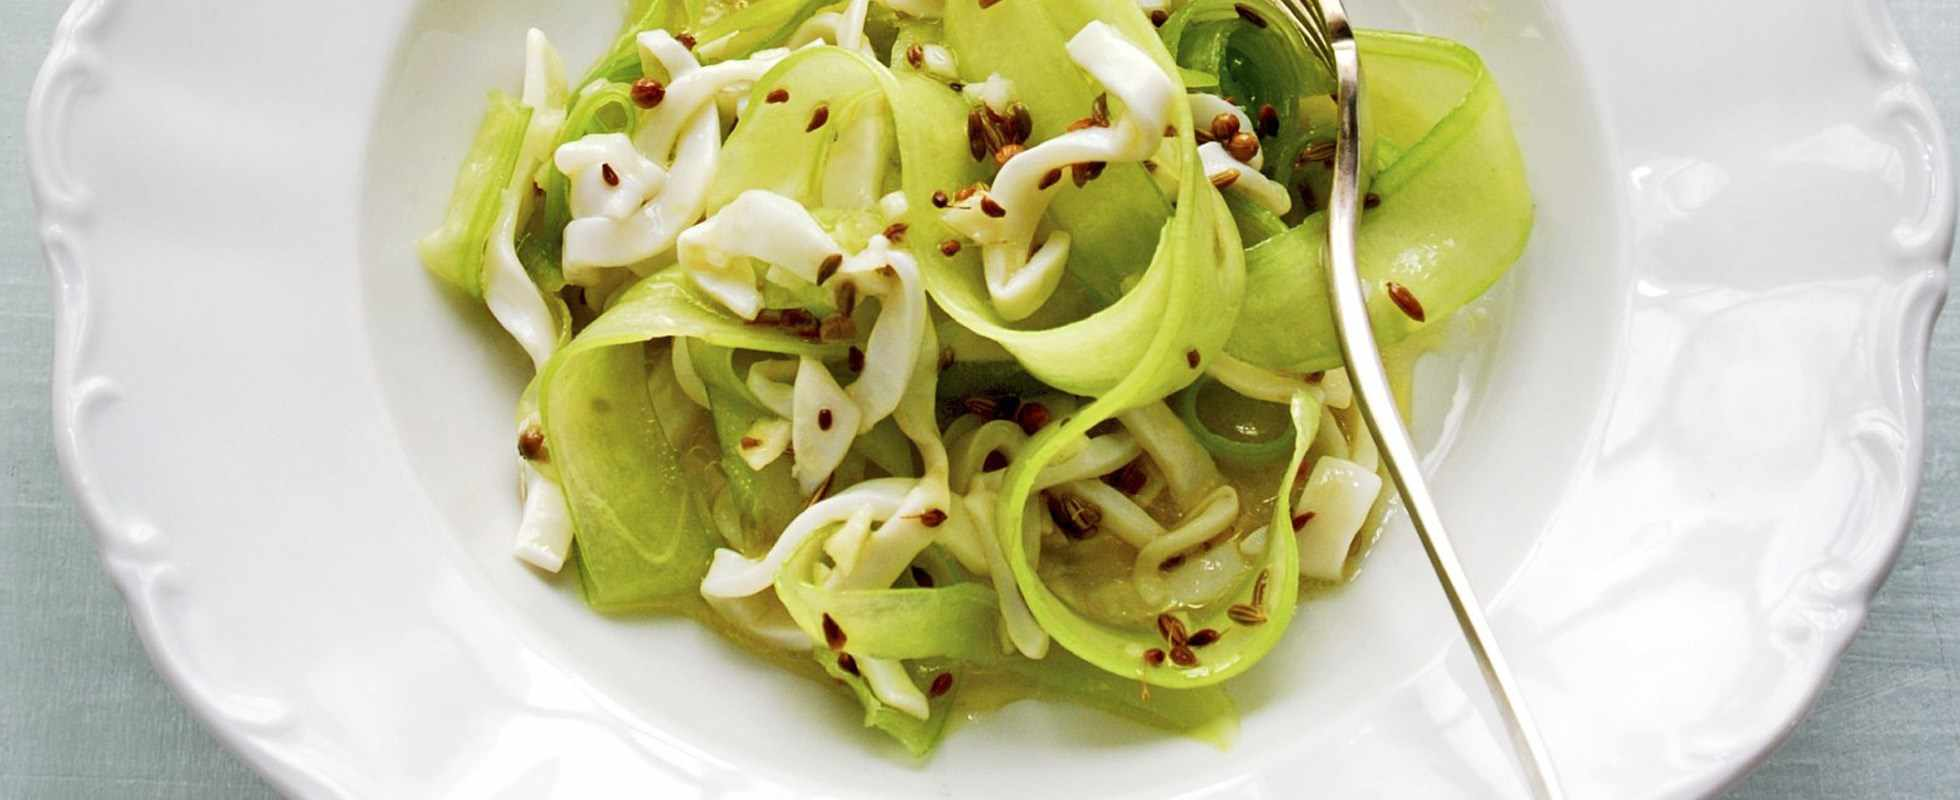 Marinated raw squid and celery salad